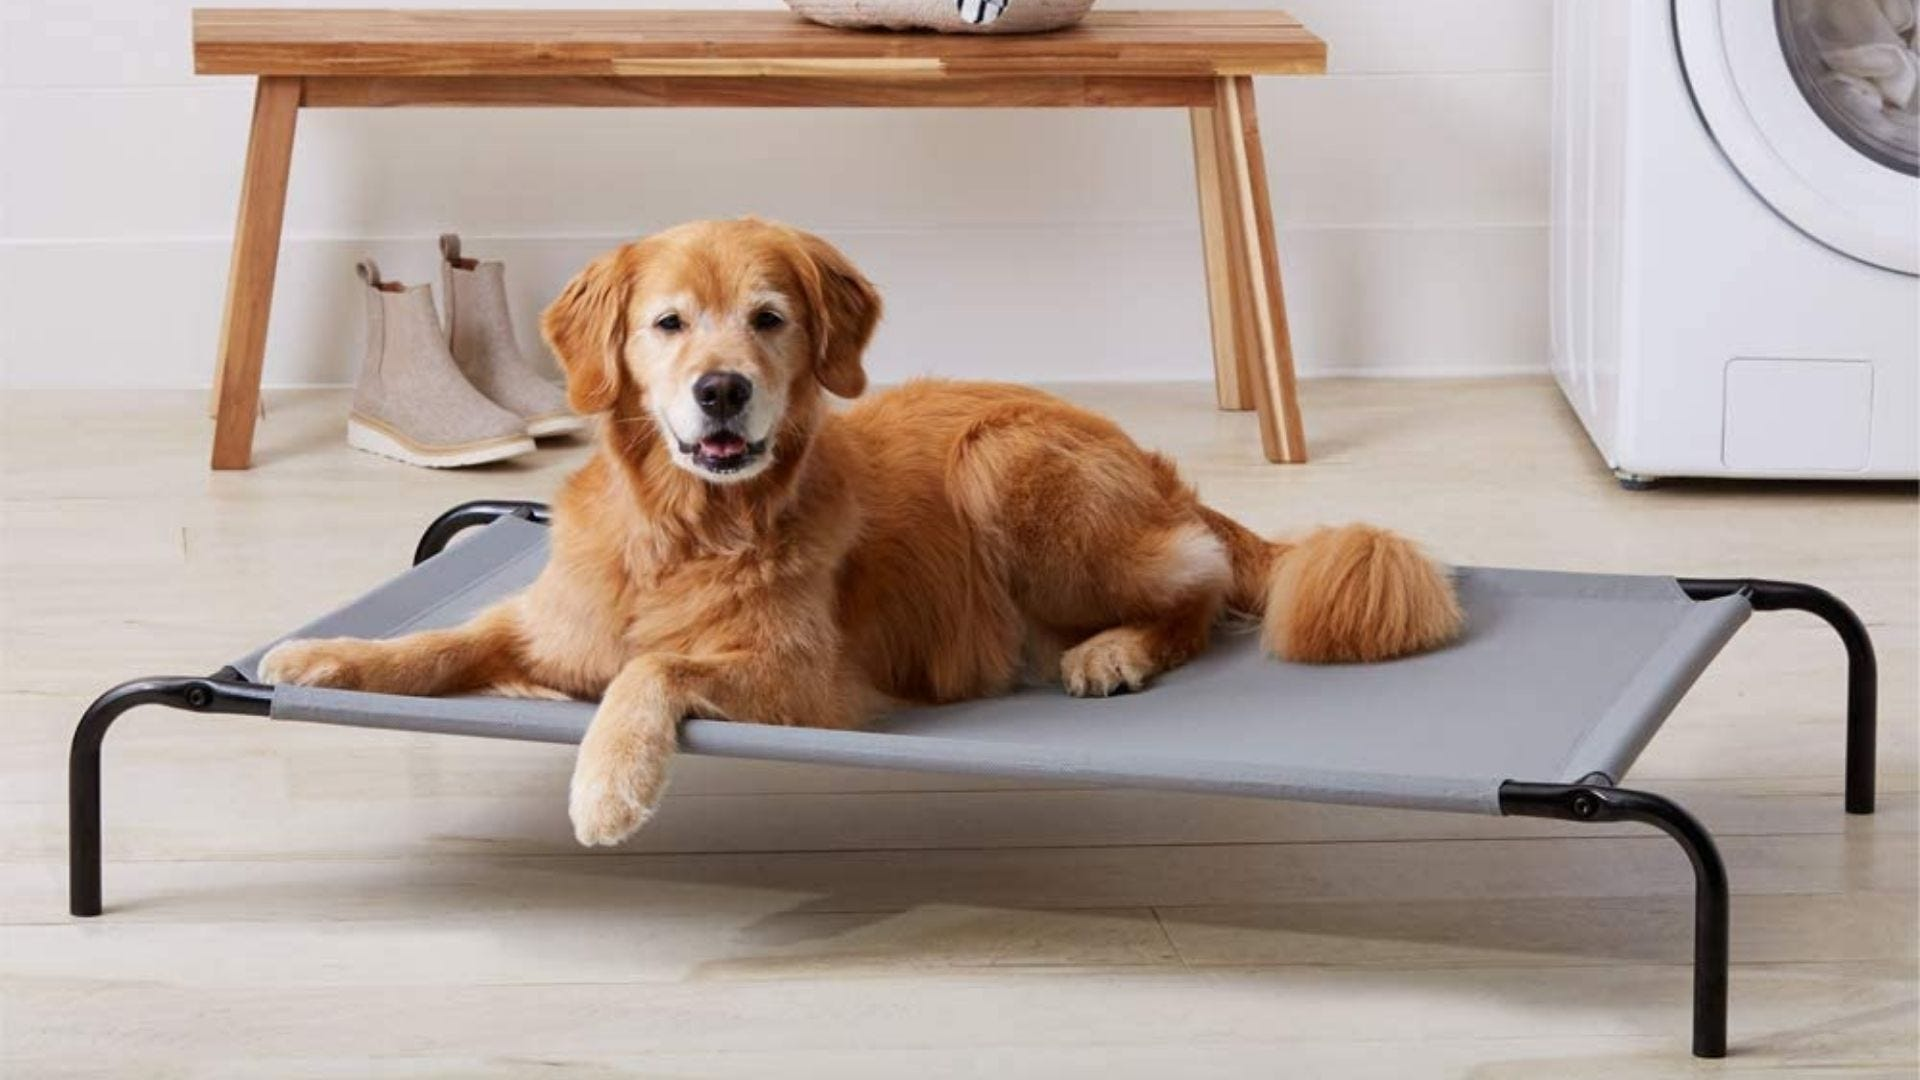 A dog sits on an elevated dog bed.